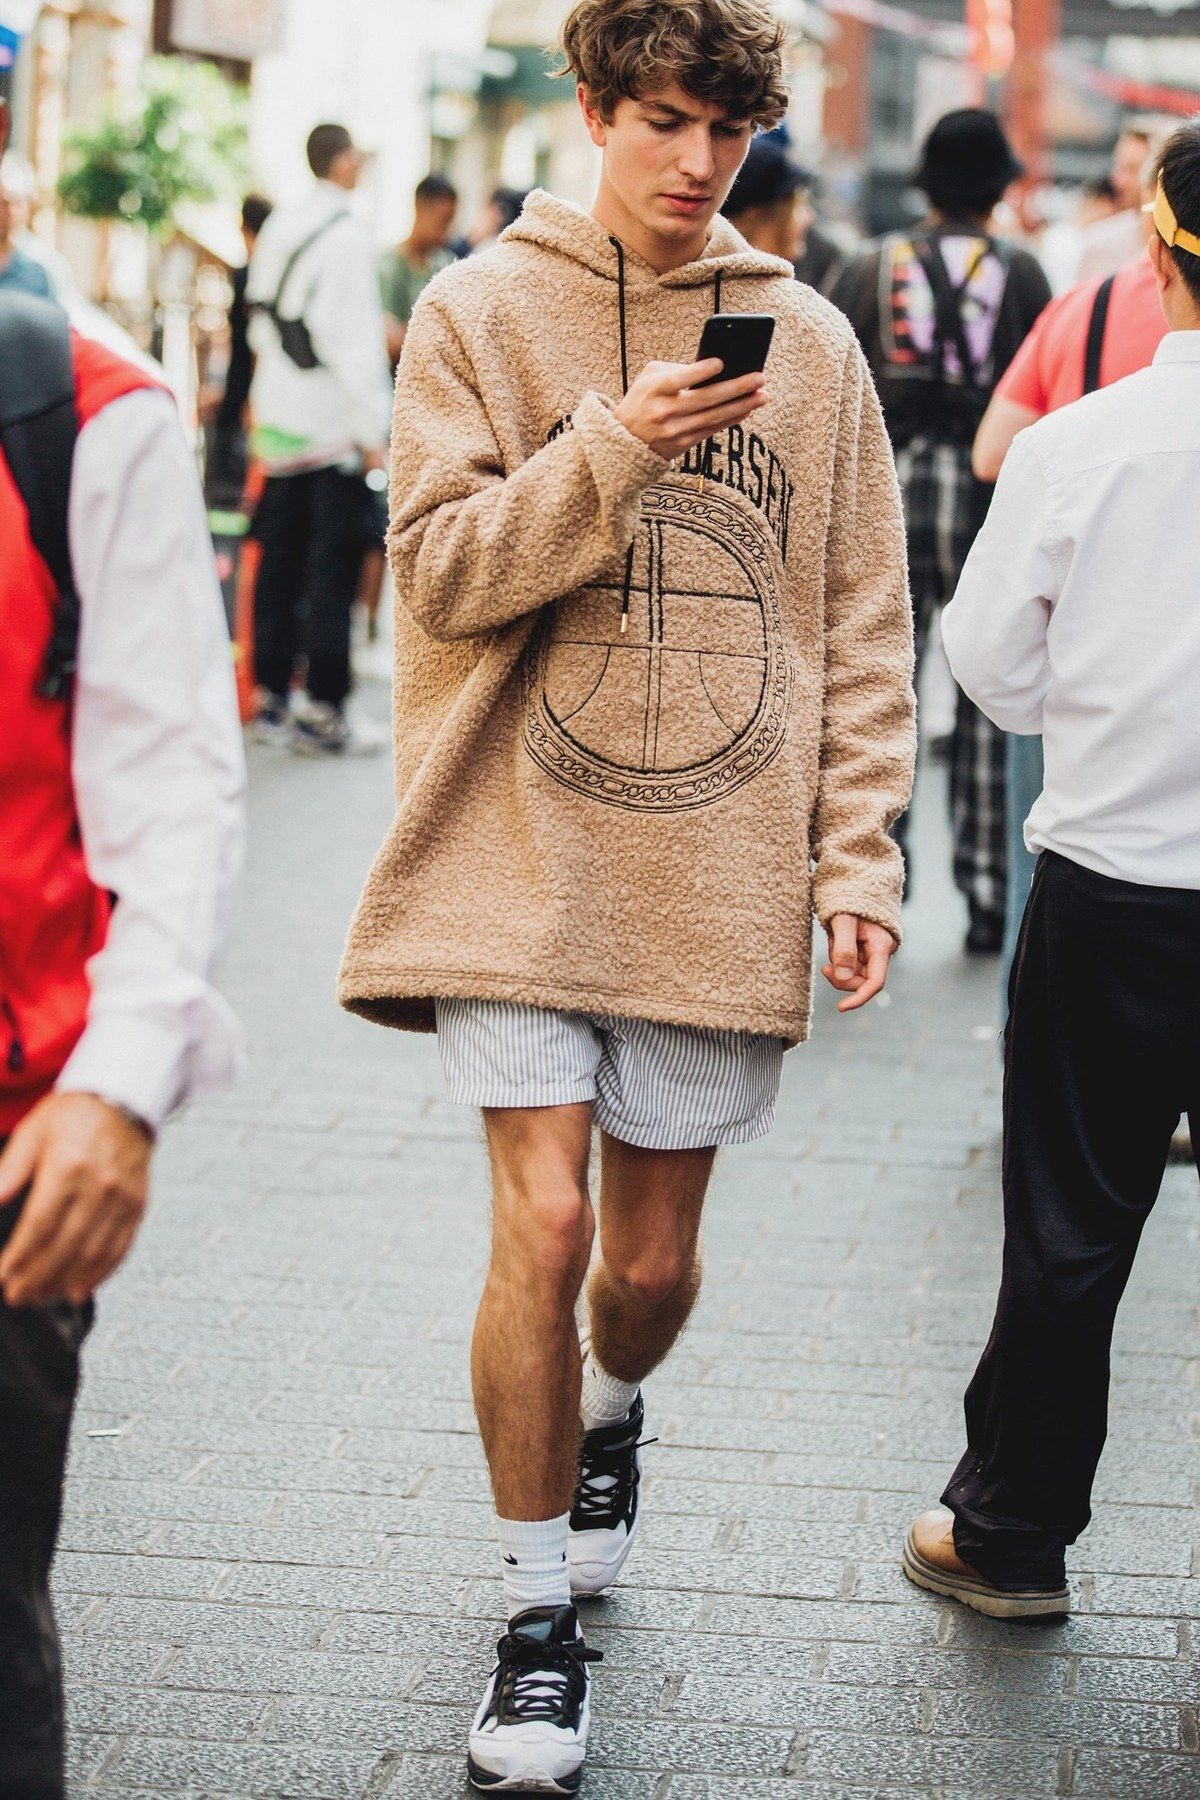 The best street style from the Spring/Summer 2019 Mens Fashion Week in London